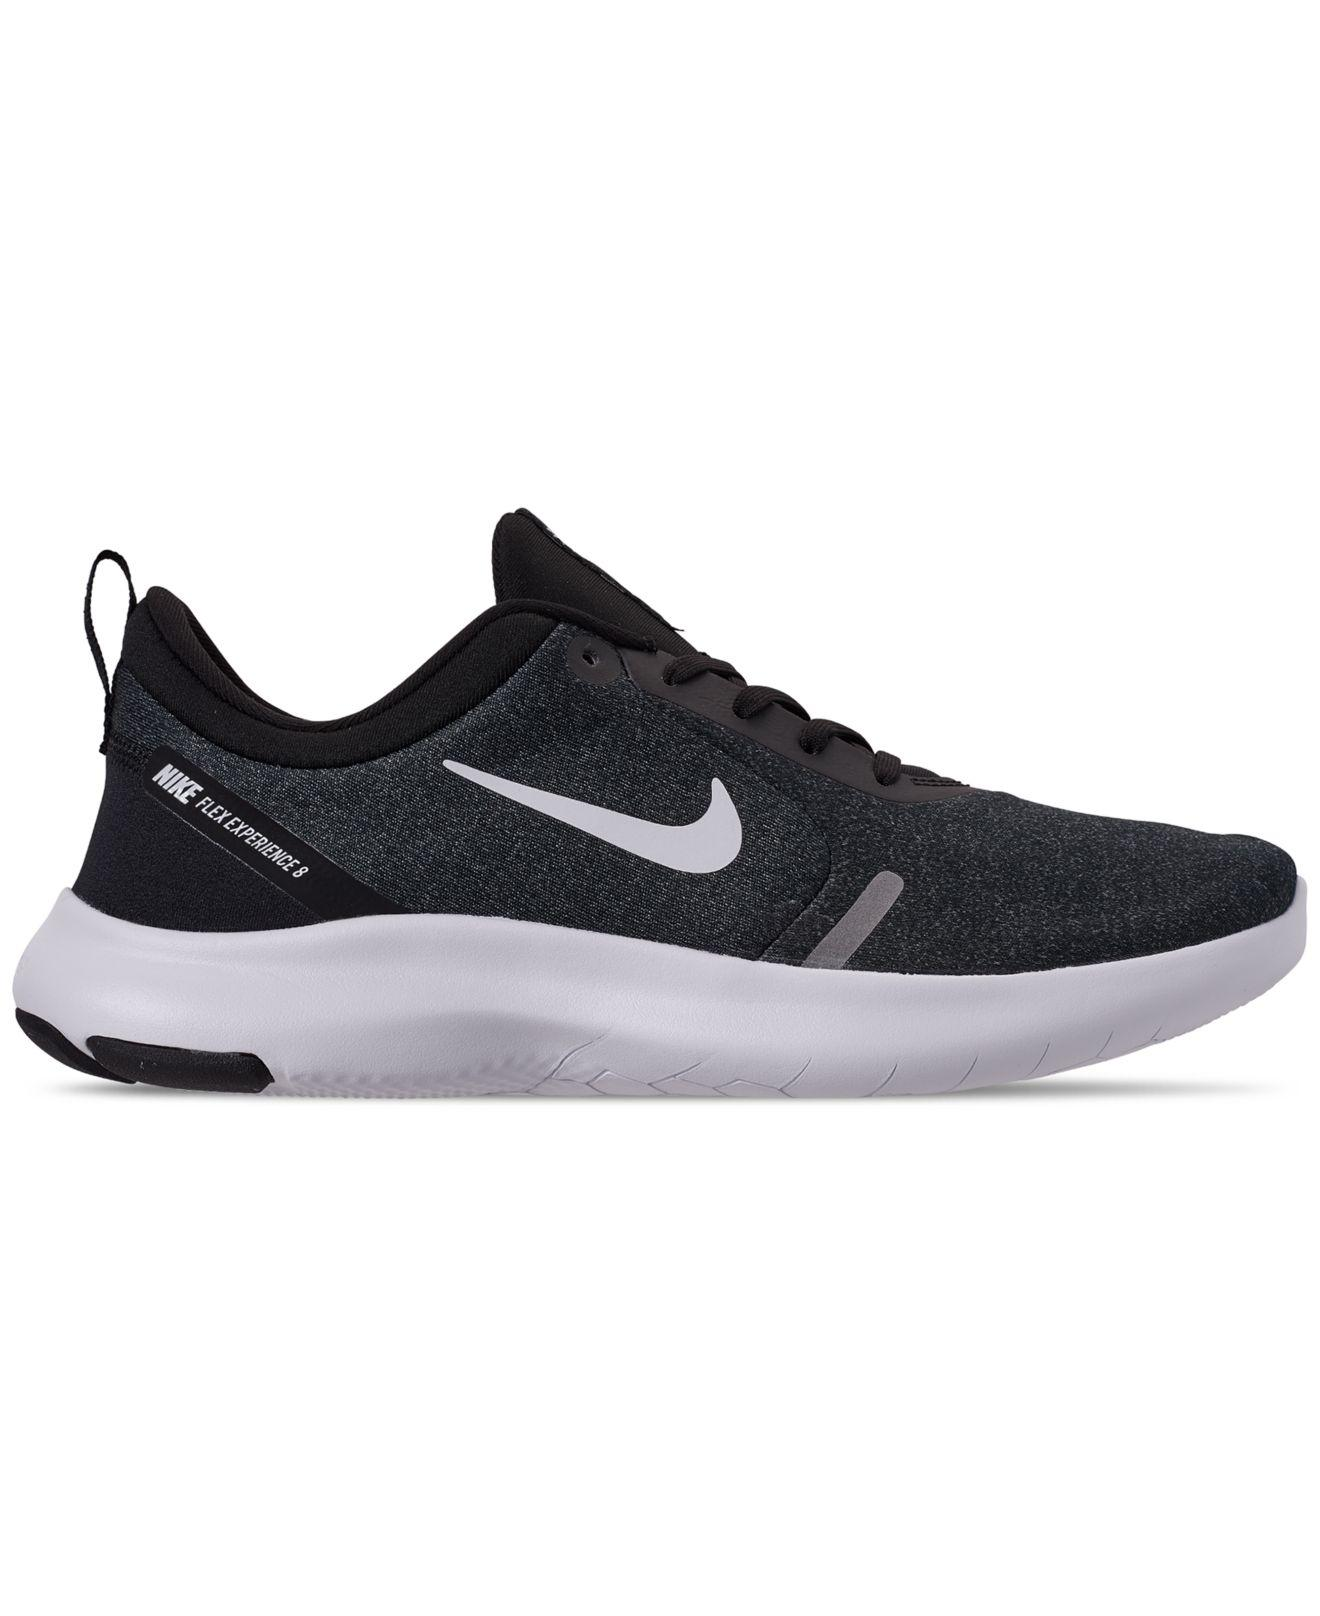 4e3c0db8ac59 Lyst - Nike Flex Experience Rn 8 Extra Wide Width Running Sneakers From  Finish Line in Black for Men